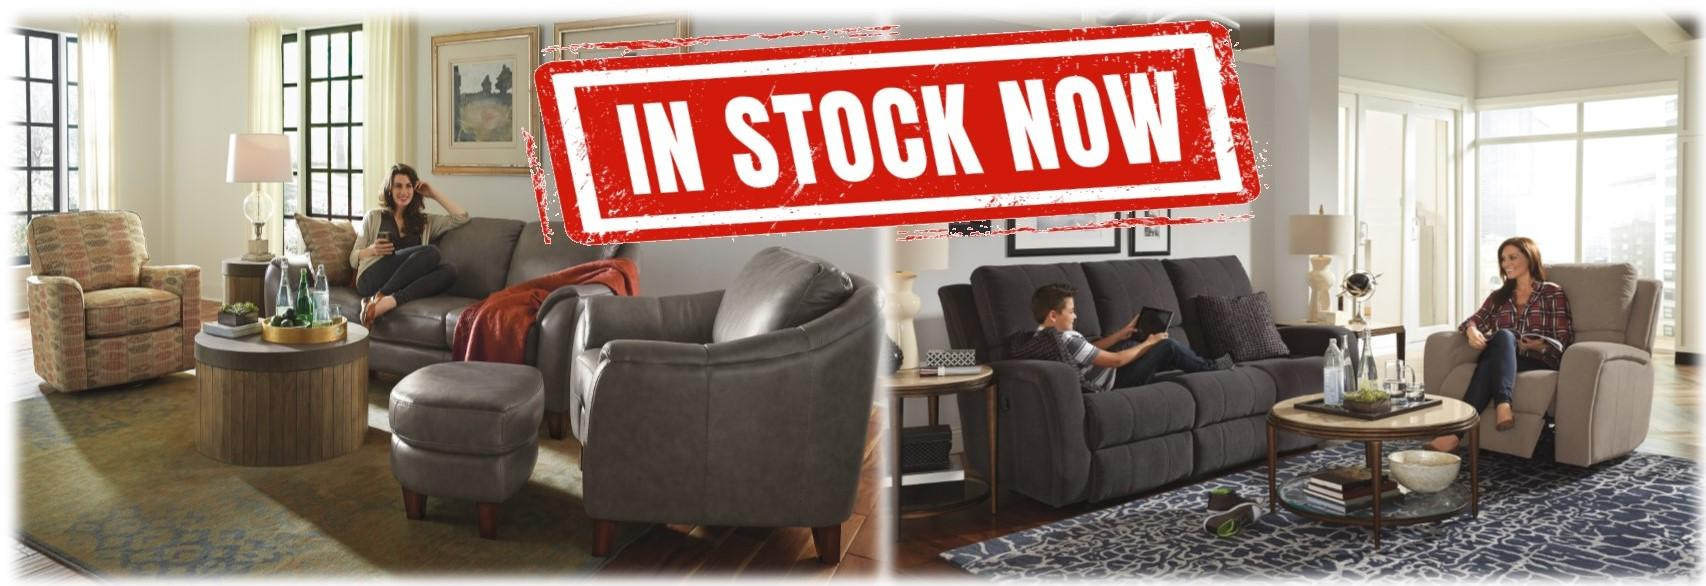 Products currently in stock at Missouri's LARGEST Furniture showroom. Hurry in and take these great finds home TODAY! **Items shown are stock items - prices, colors, & options may be different than what is in store.**